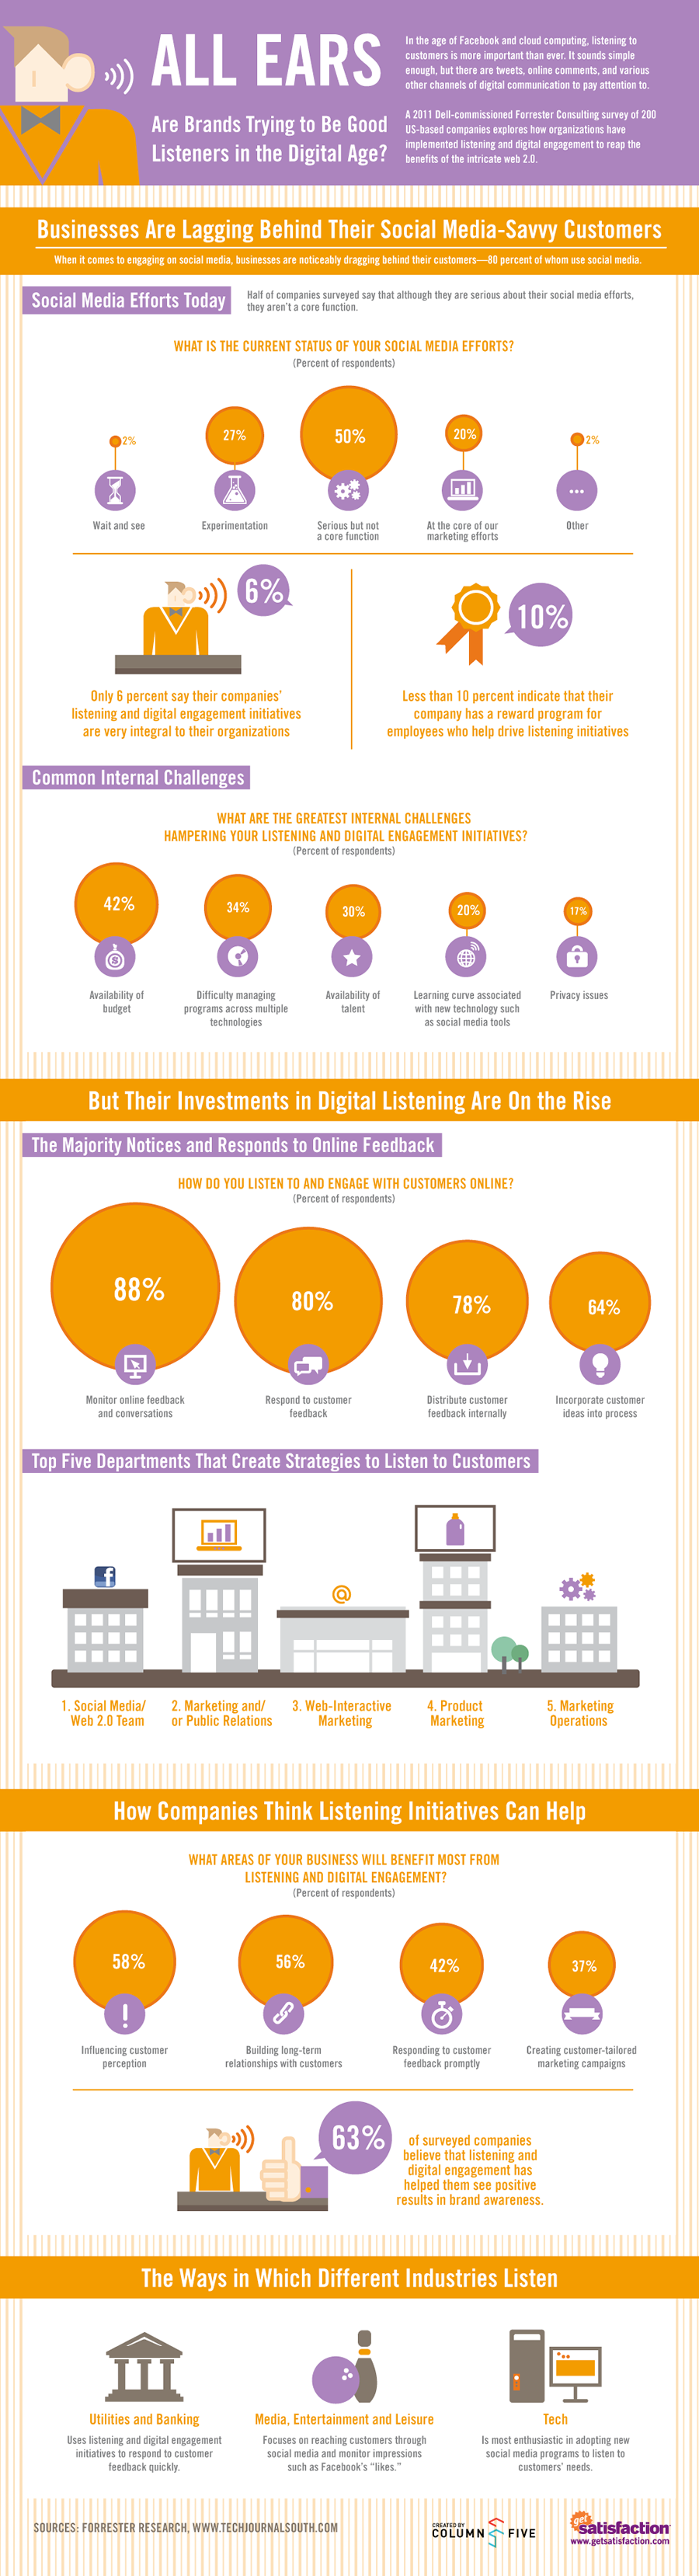 http://inblurbs.com/wp-content/uploads/2012/08/How_Brands_Can_Listen_in_the_Digital_Age-full1.png